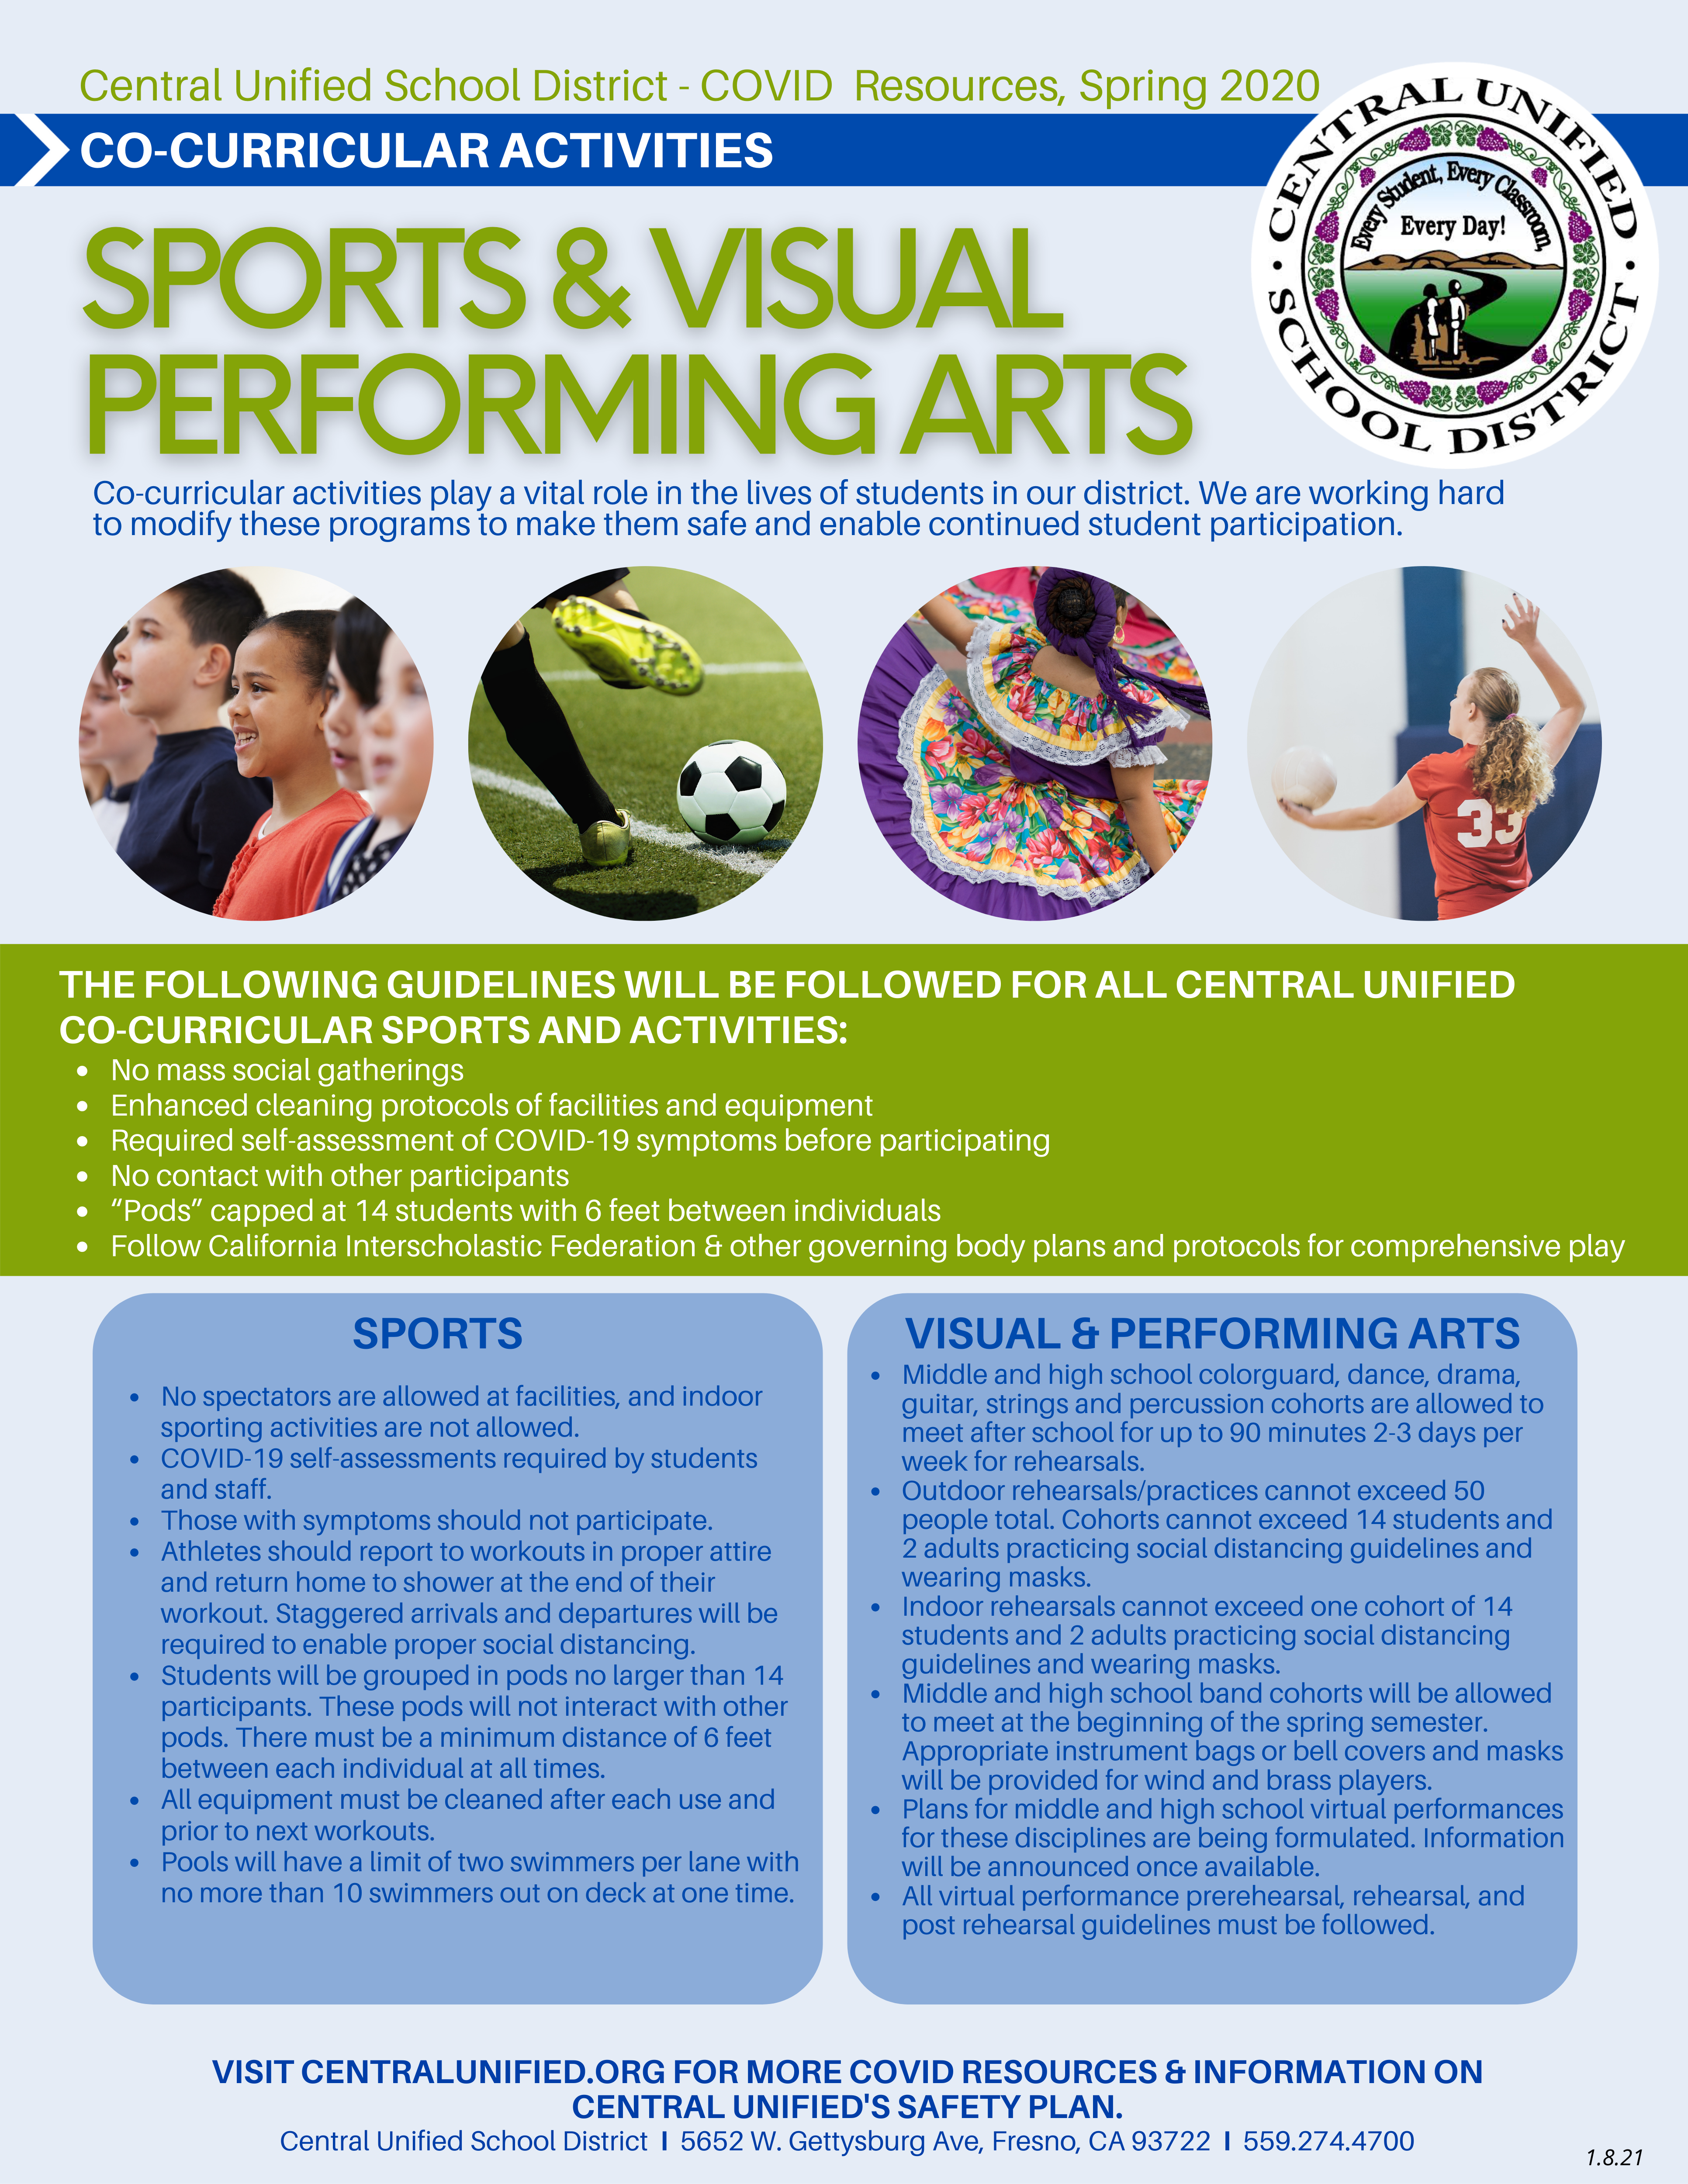 Sports and Performing Arts